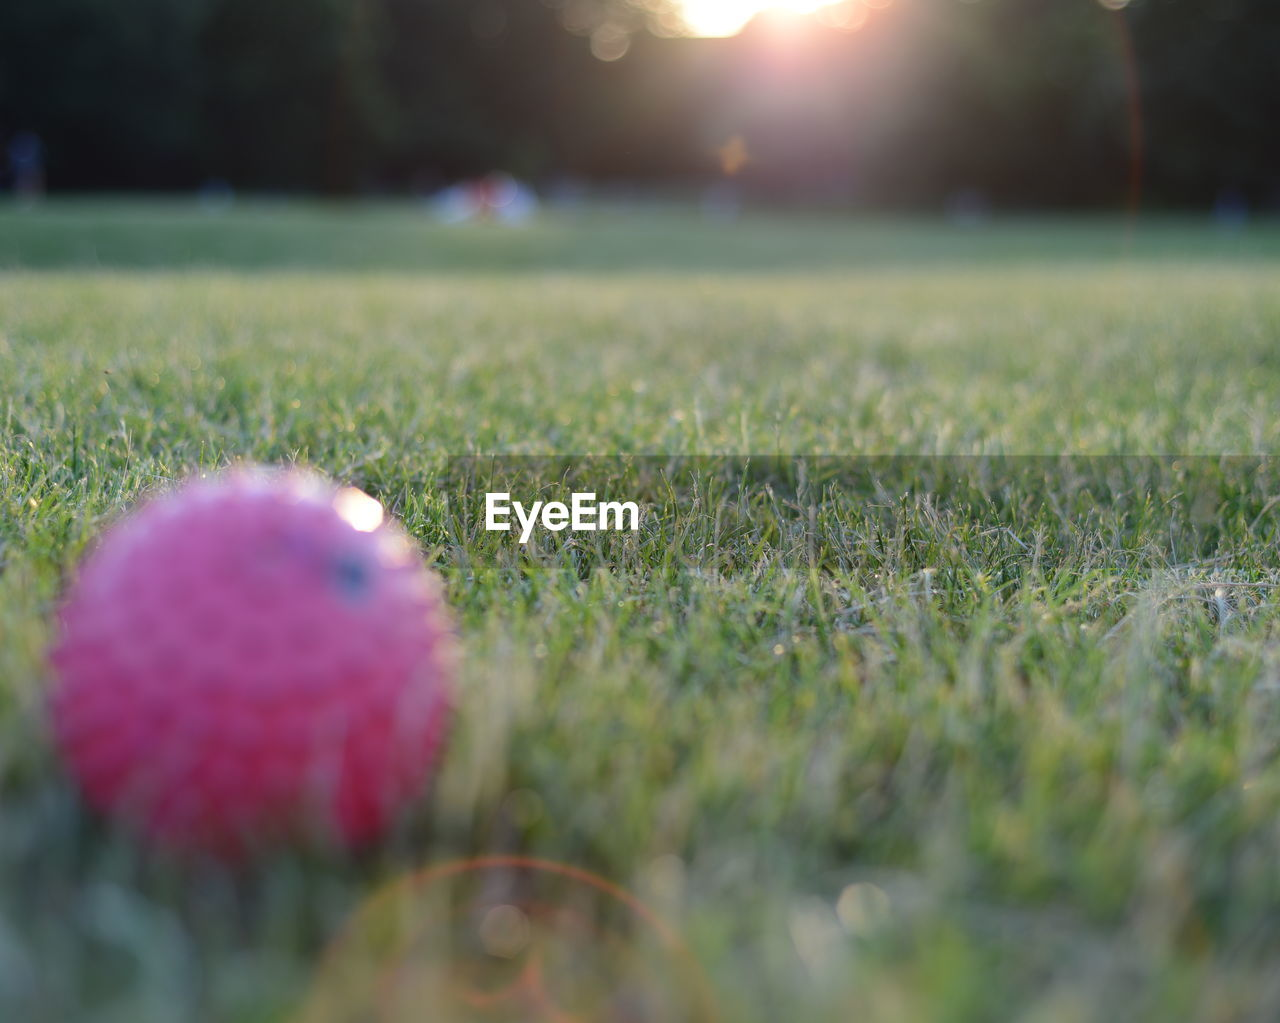 grass, selective focus, field, playing field, green color, growth, no people, nature, outdoors, beauty in nature, day, sport, close-up, soccer field, green - golf course, freshness